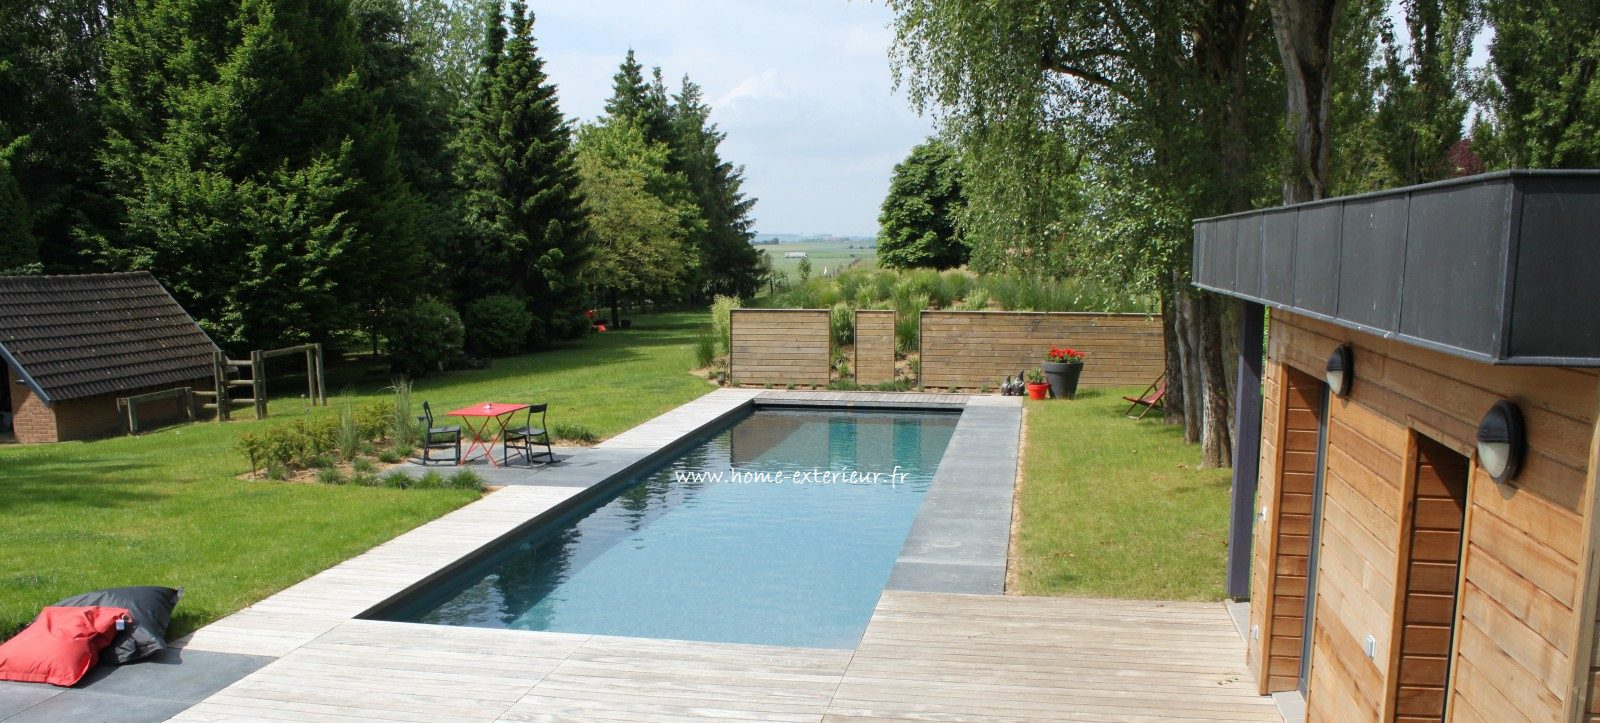 Architecte paysagiste terrasses jardins nord lille home ext rieur Piscine exterieur photos idees